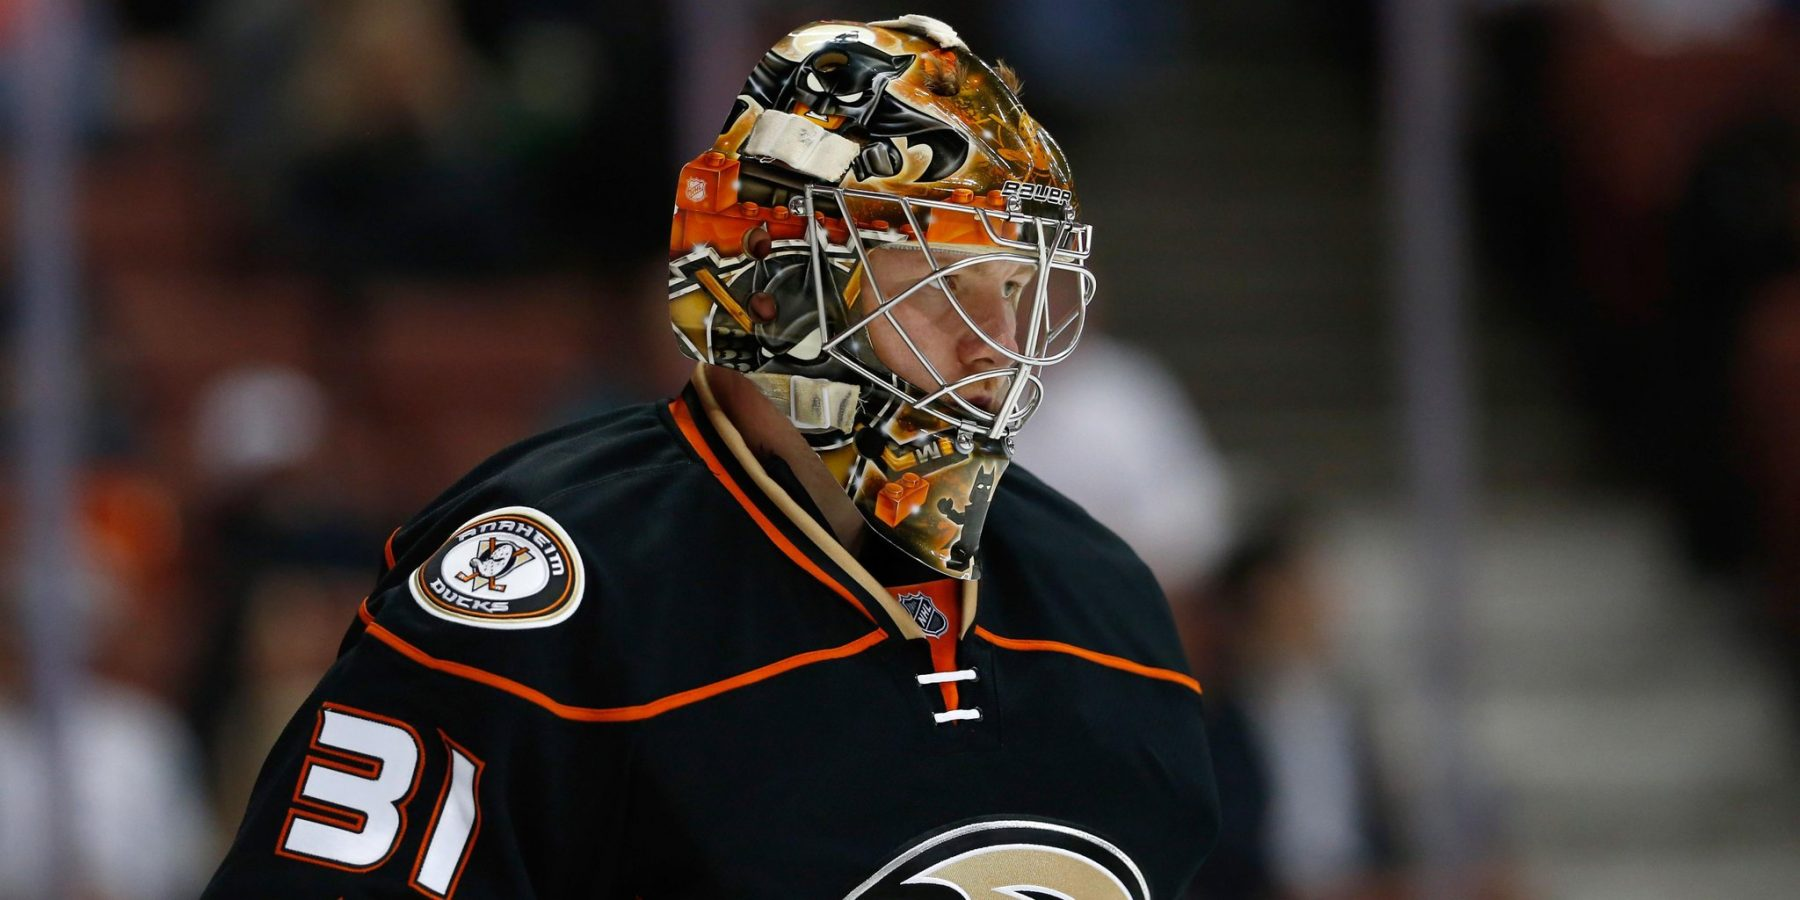 Leafs acquire Frederik Andersen from Ducks, sign him to 5-year contract